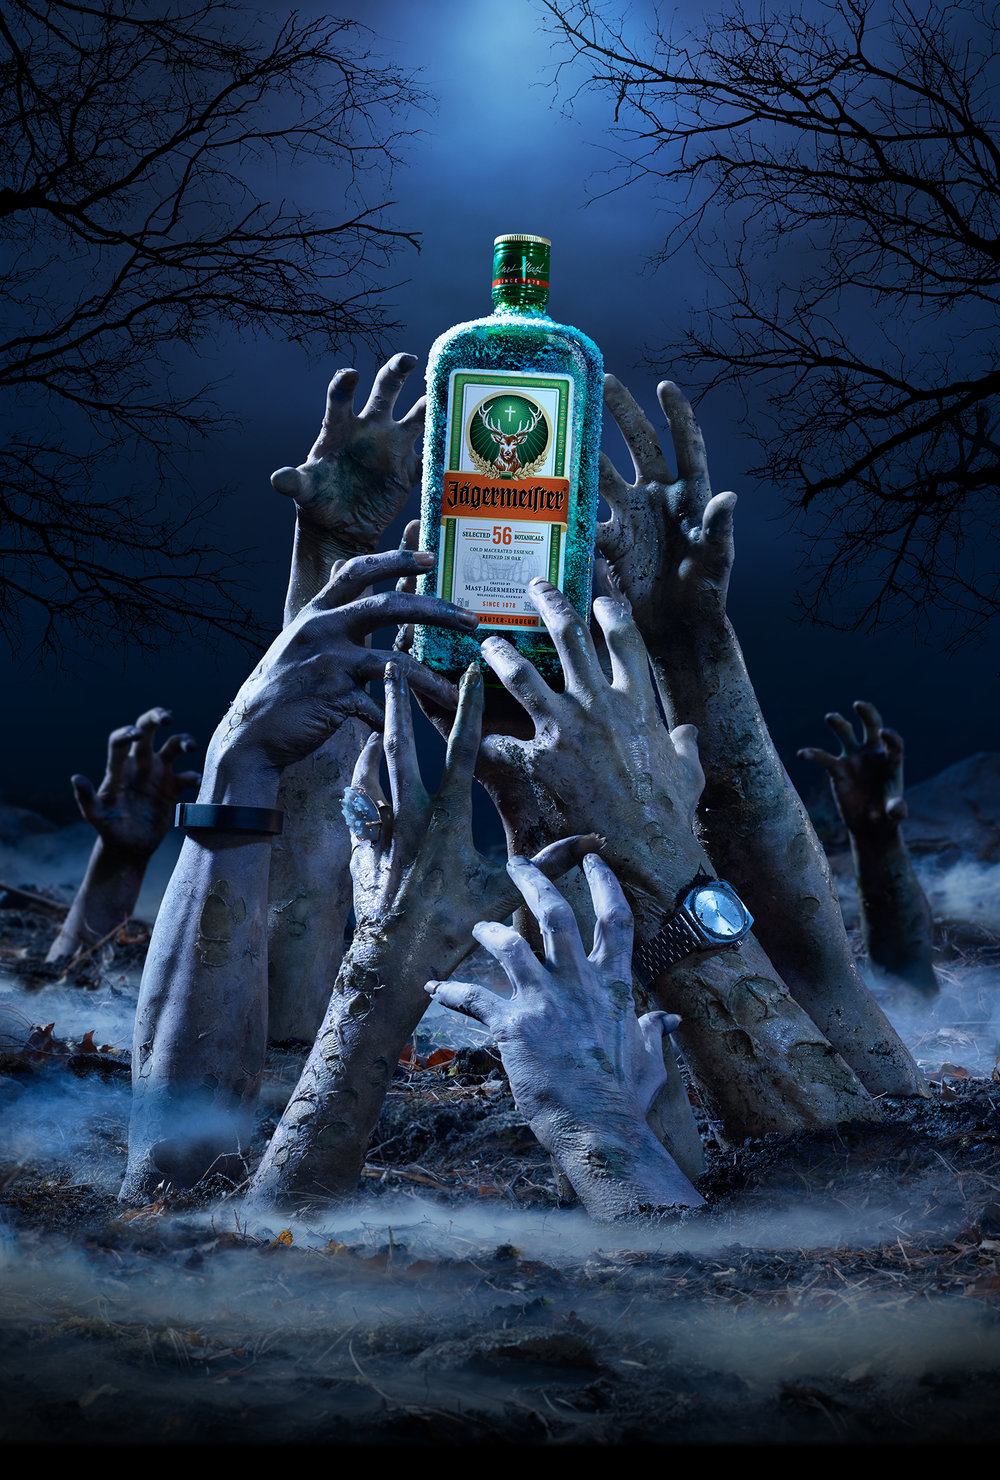 Jägermeister - New York City